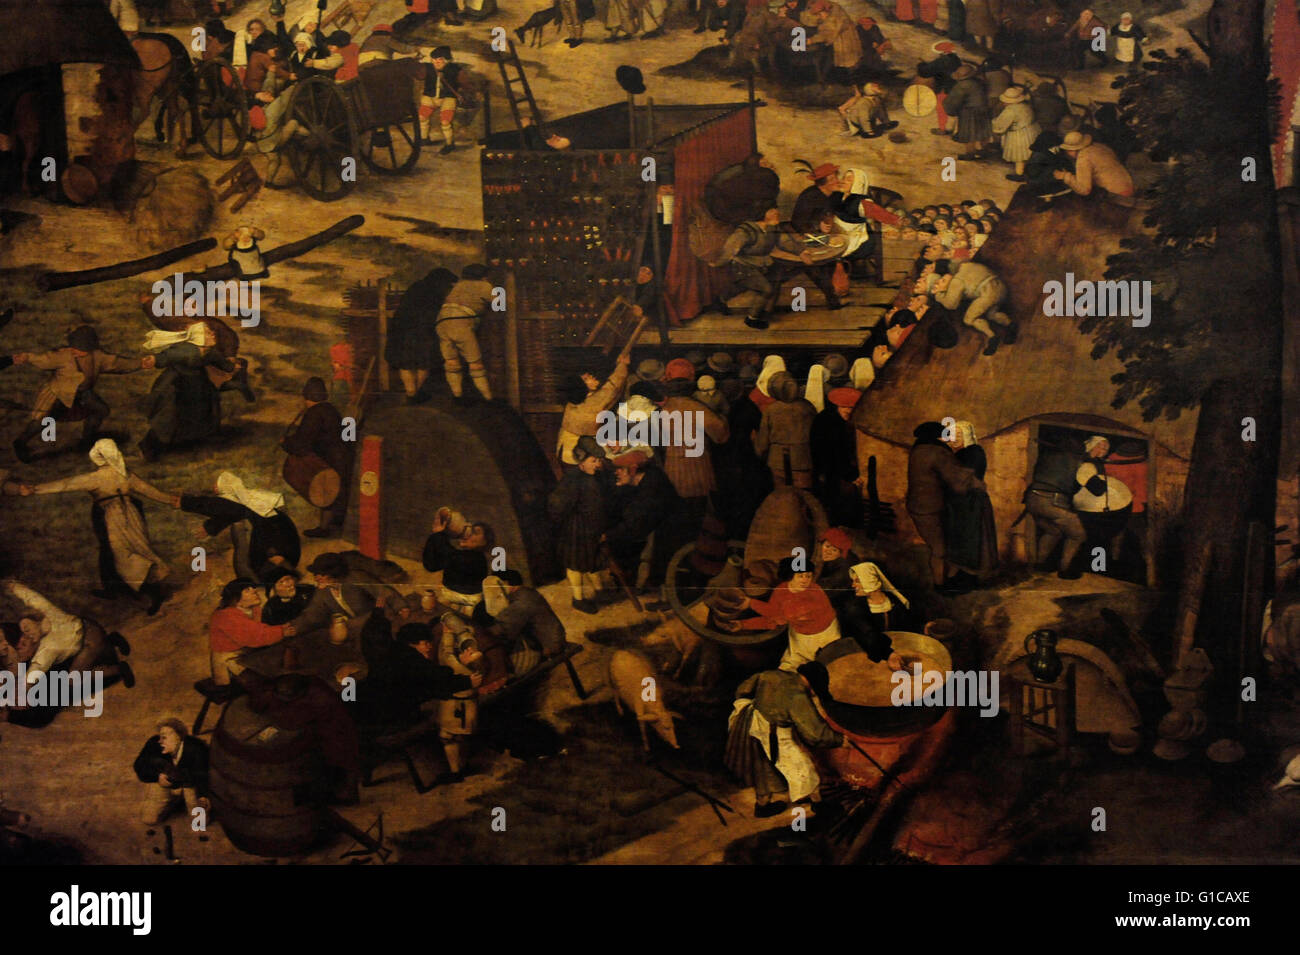 Pieter Brueghel the Younger (1564-1638). Fair with a Theatrical Presentation. First halph of the 17th century. Detail. - Stock Image